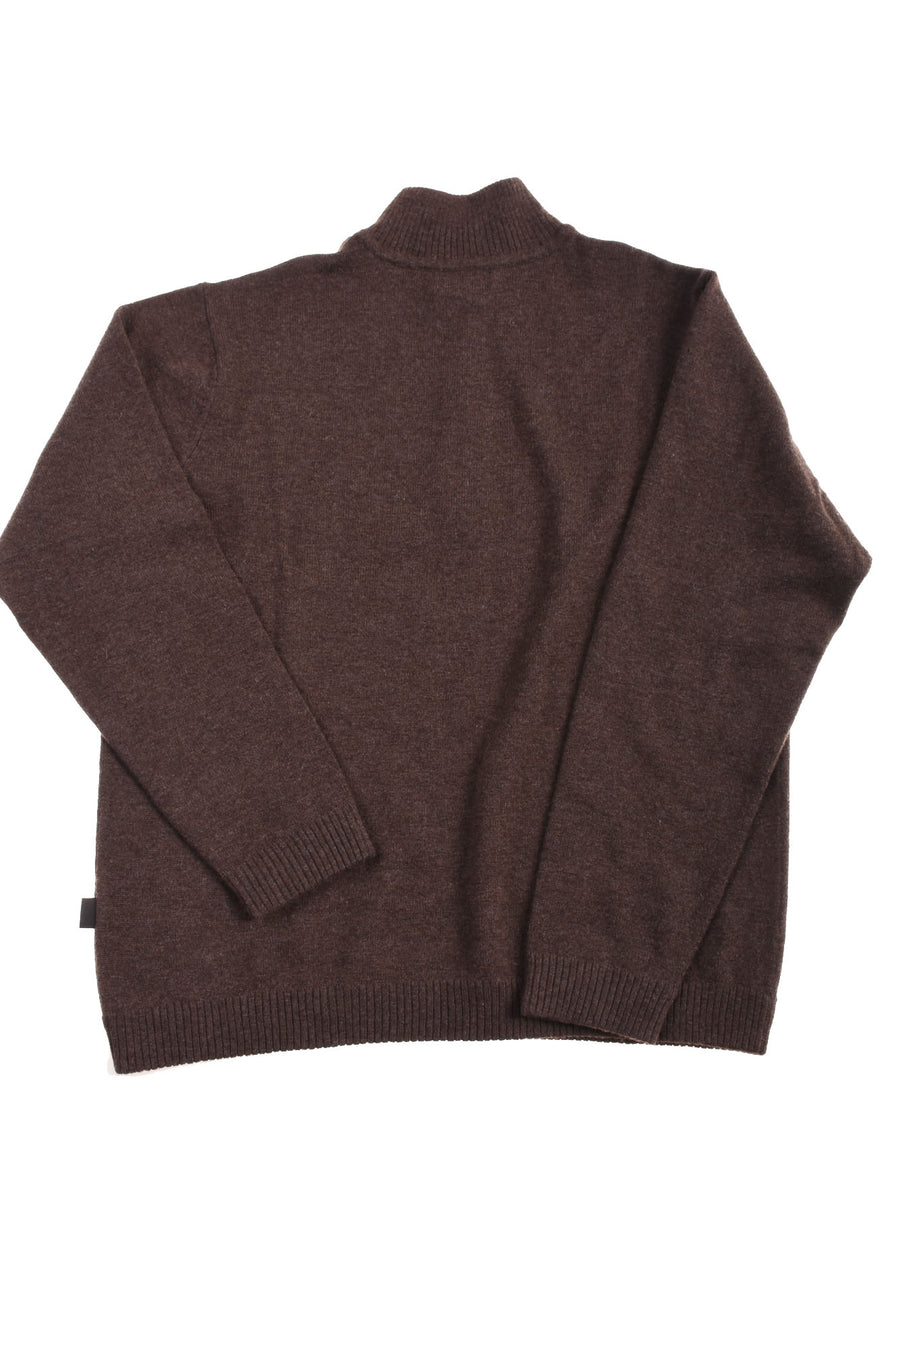 Men's Sweater By Patagonia